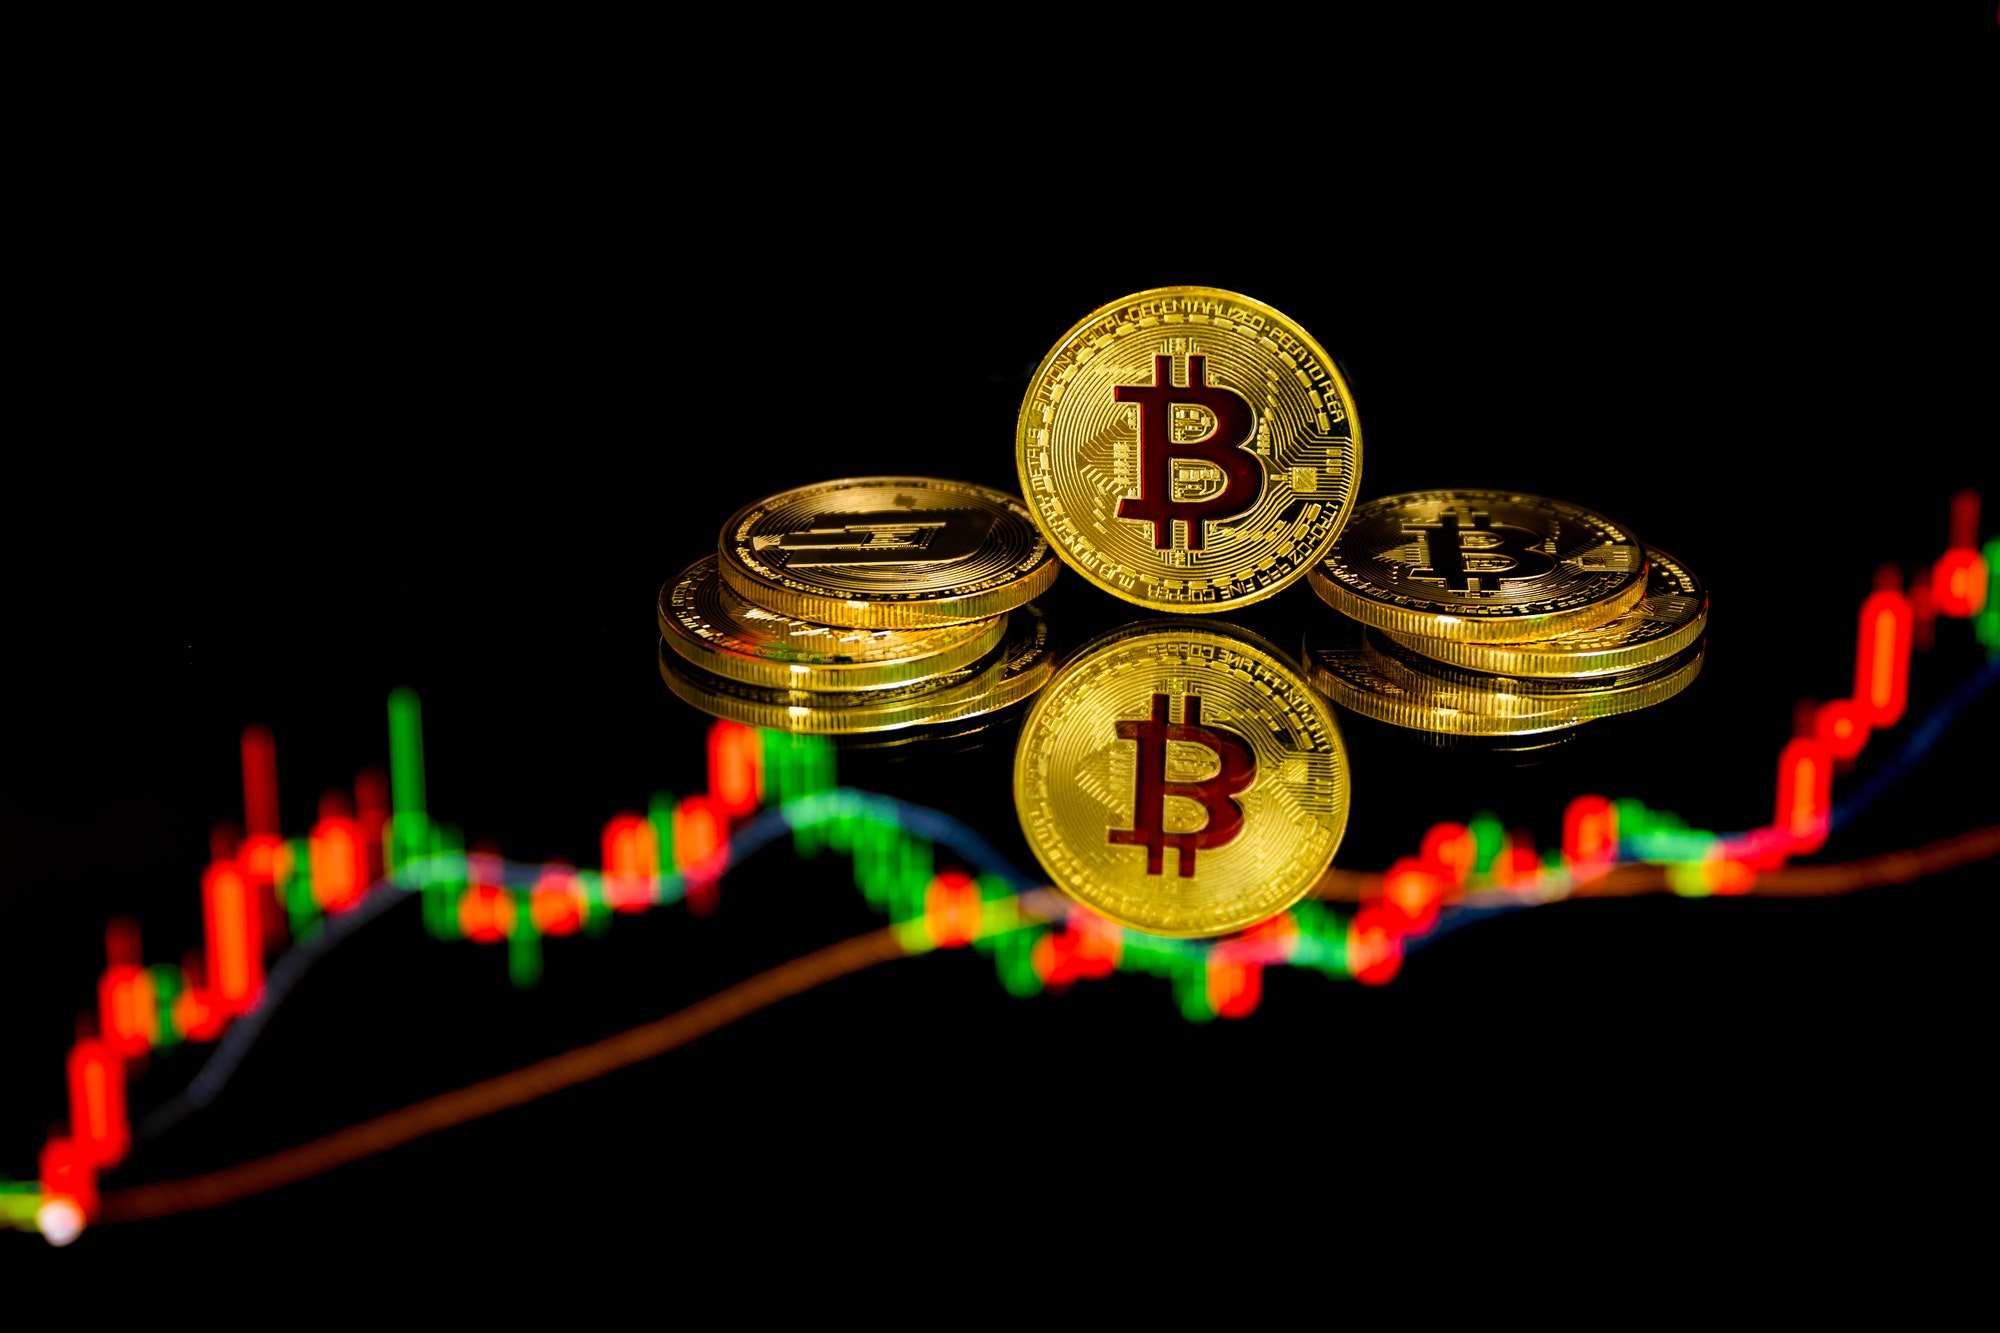 Bitcoin coins with global trading exchange market price chart in the background